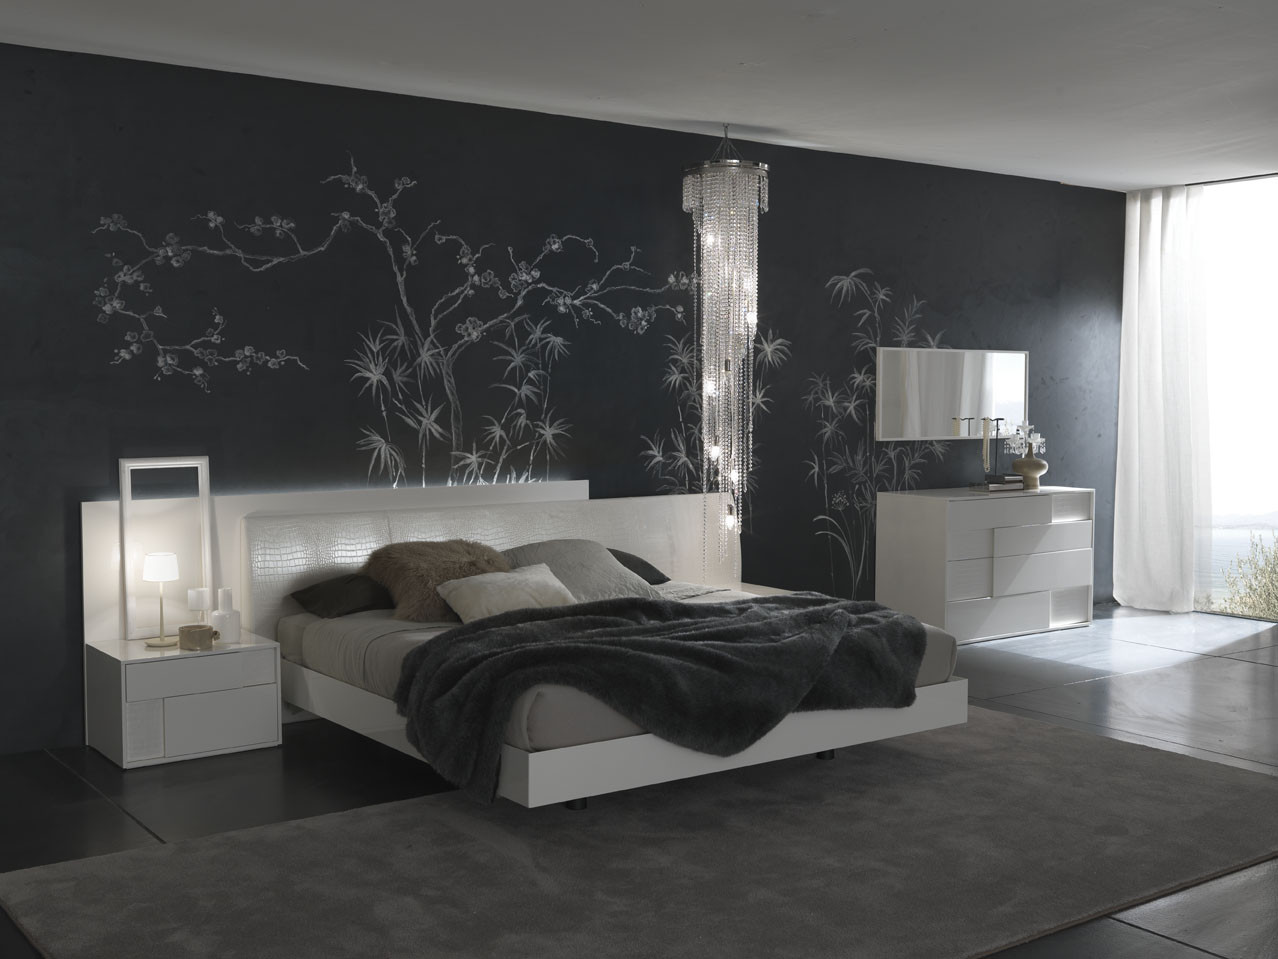 Best ideas about Modern Bedroom Furniture . Save or Pin Bedroom Decorating Ideas from Evinco Now.